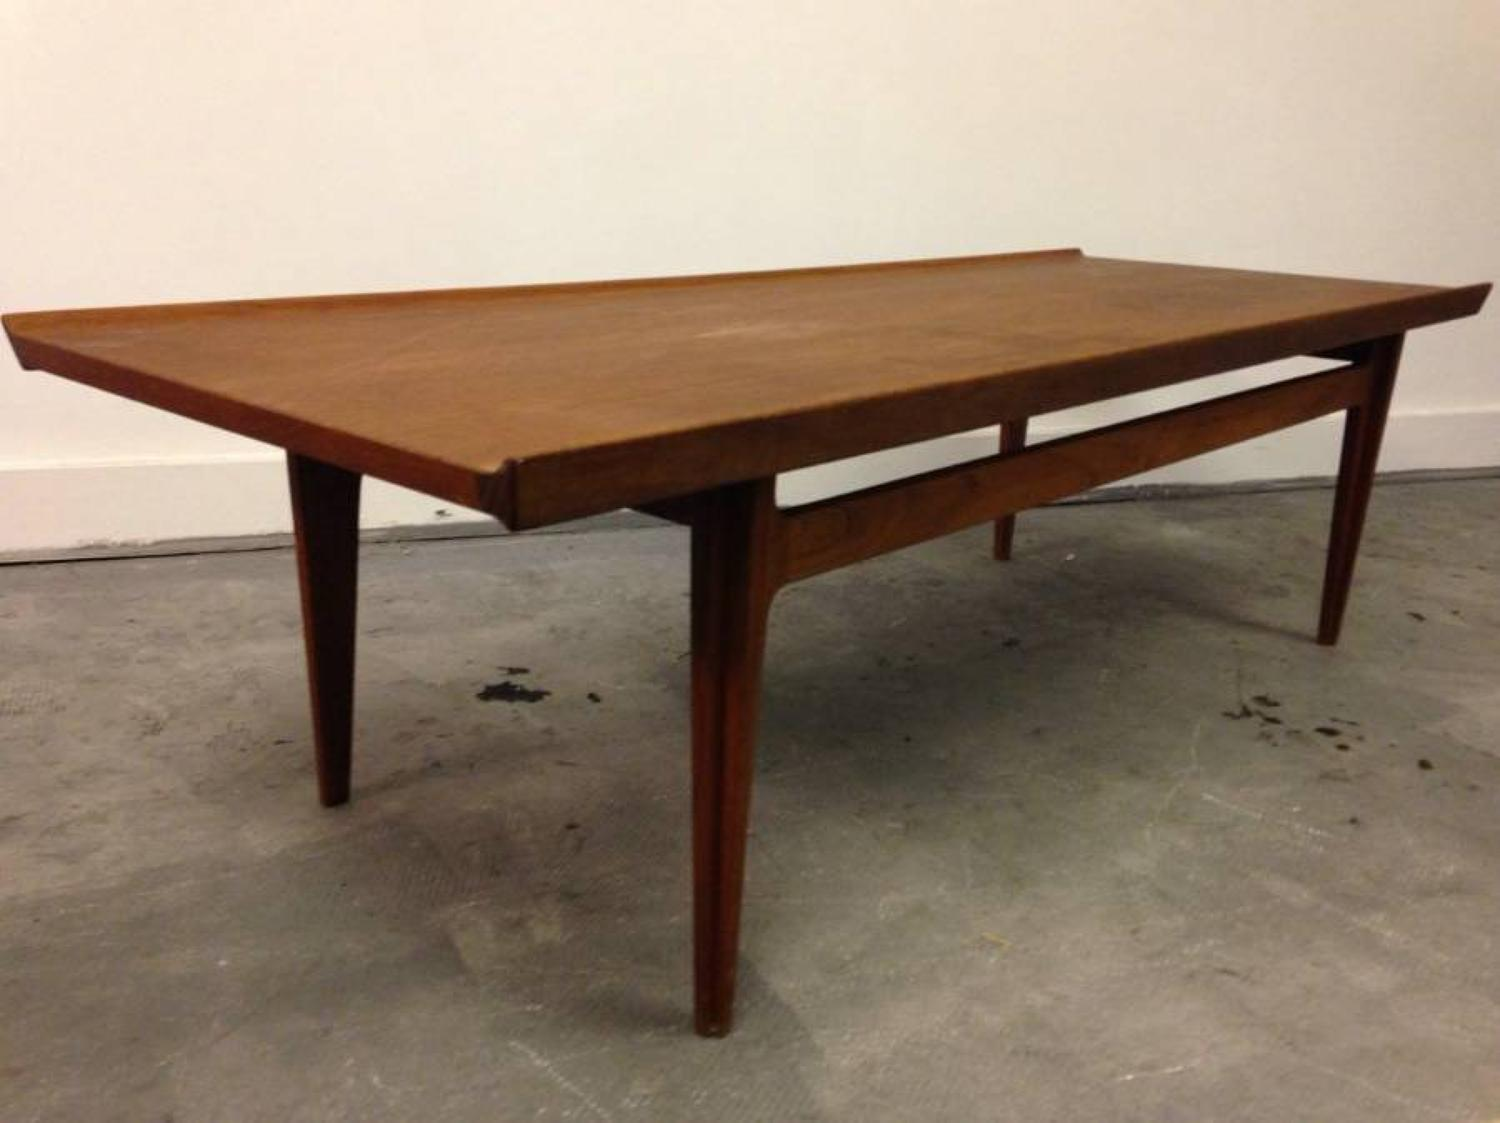 Danish teak coffee table by Finn Juhl